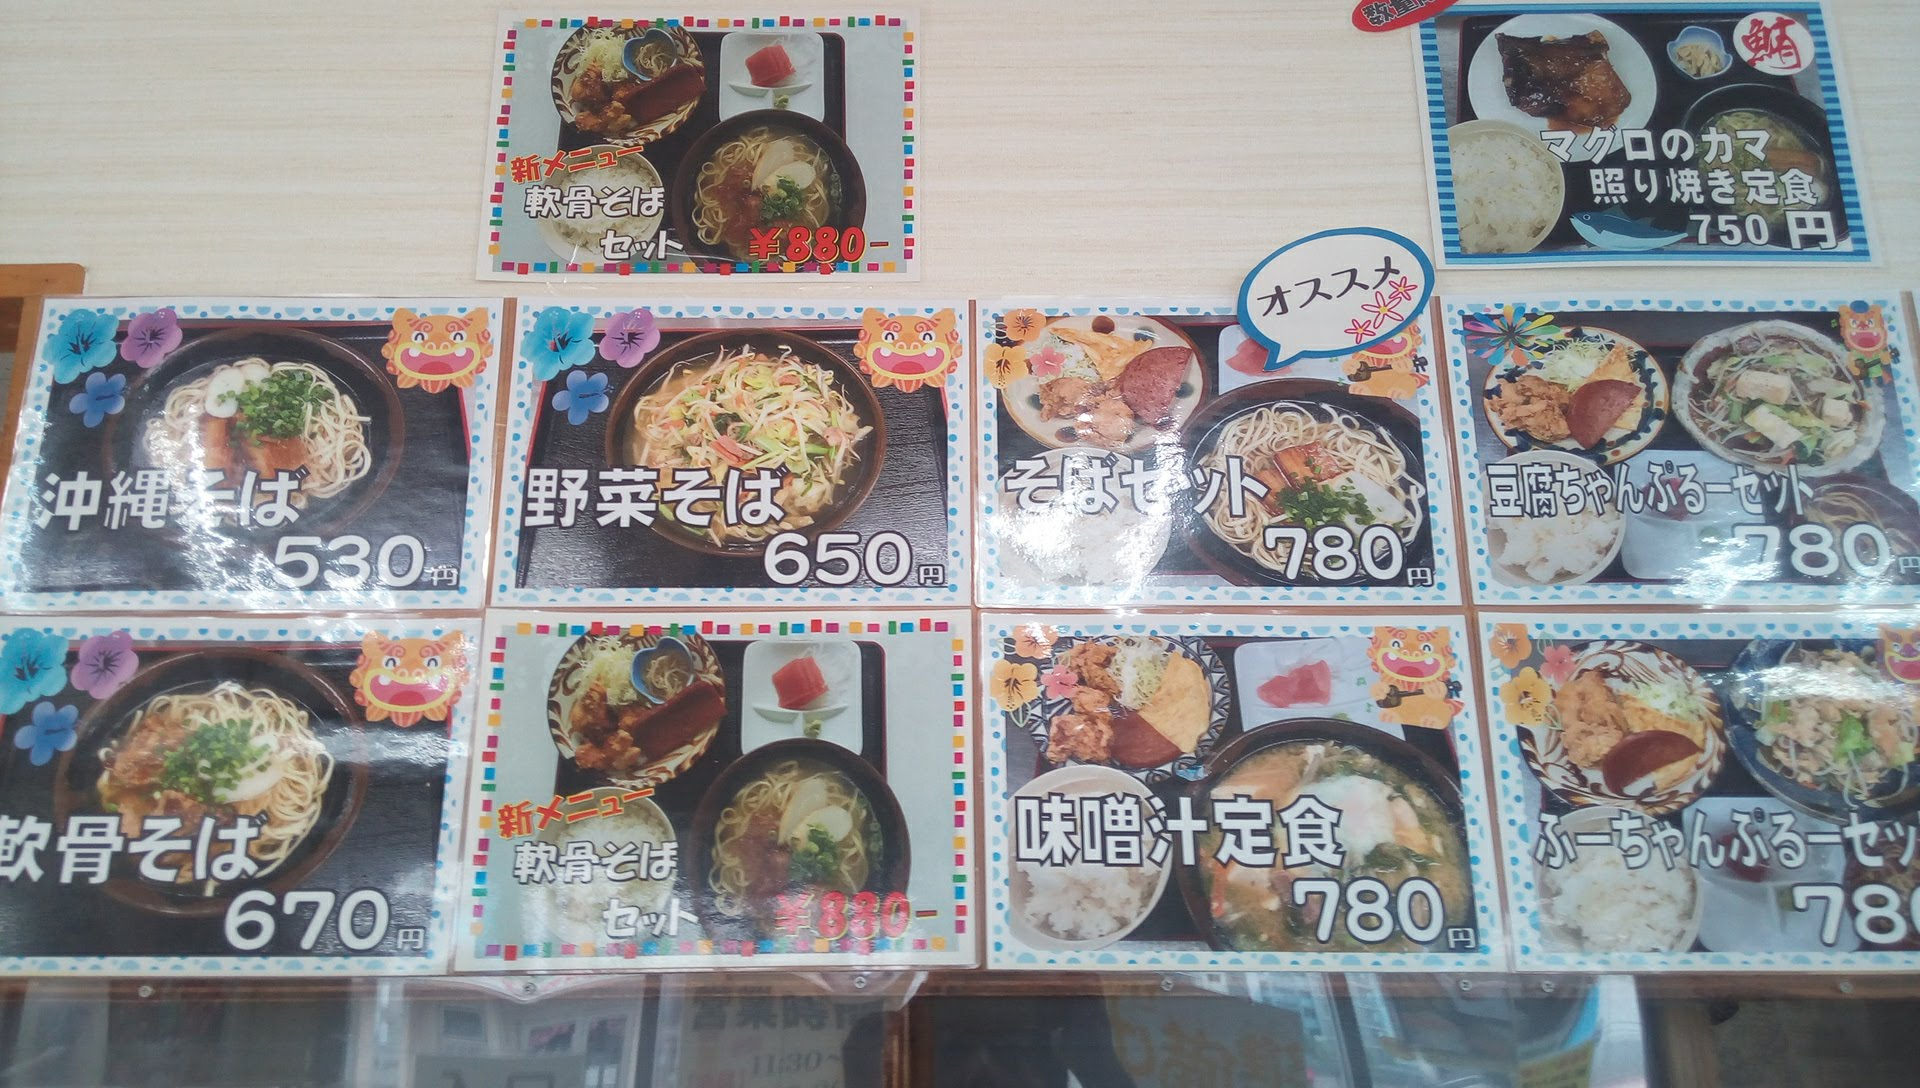 The menu of the Yachimun shokudou 2